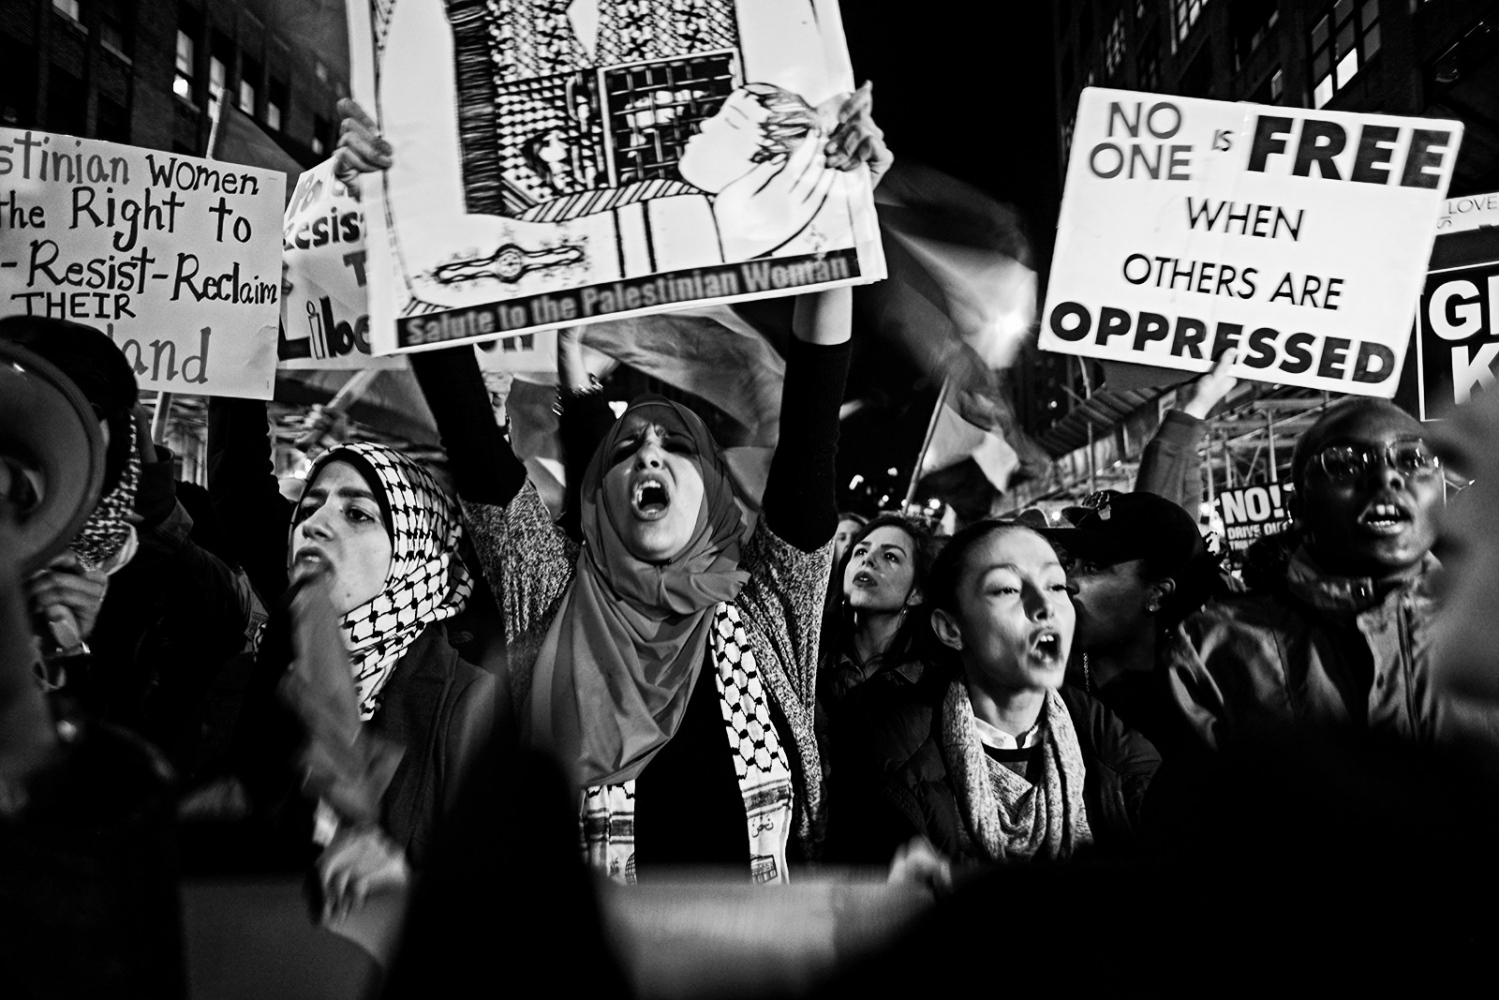 On January 29th, 2017, protestors in New York CIty take to the streets  after the Trump administration announced atemporary ban the entry of foreign nationals from some Muslim-majority countries through executive order, including refugees and visa holders. One of the countries in question is Sudan but this includes Iraq, Syria, Iran, Libya, Somalia and Yemen.